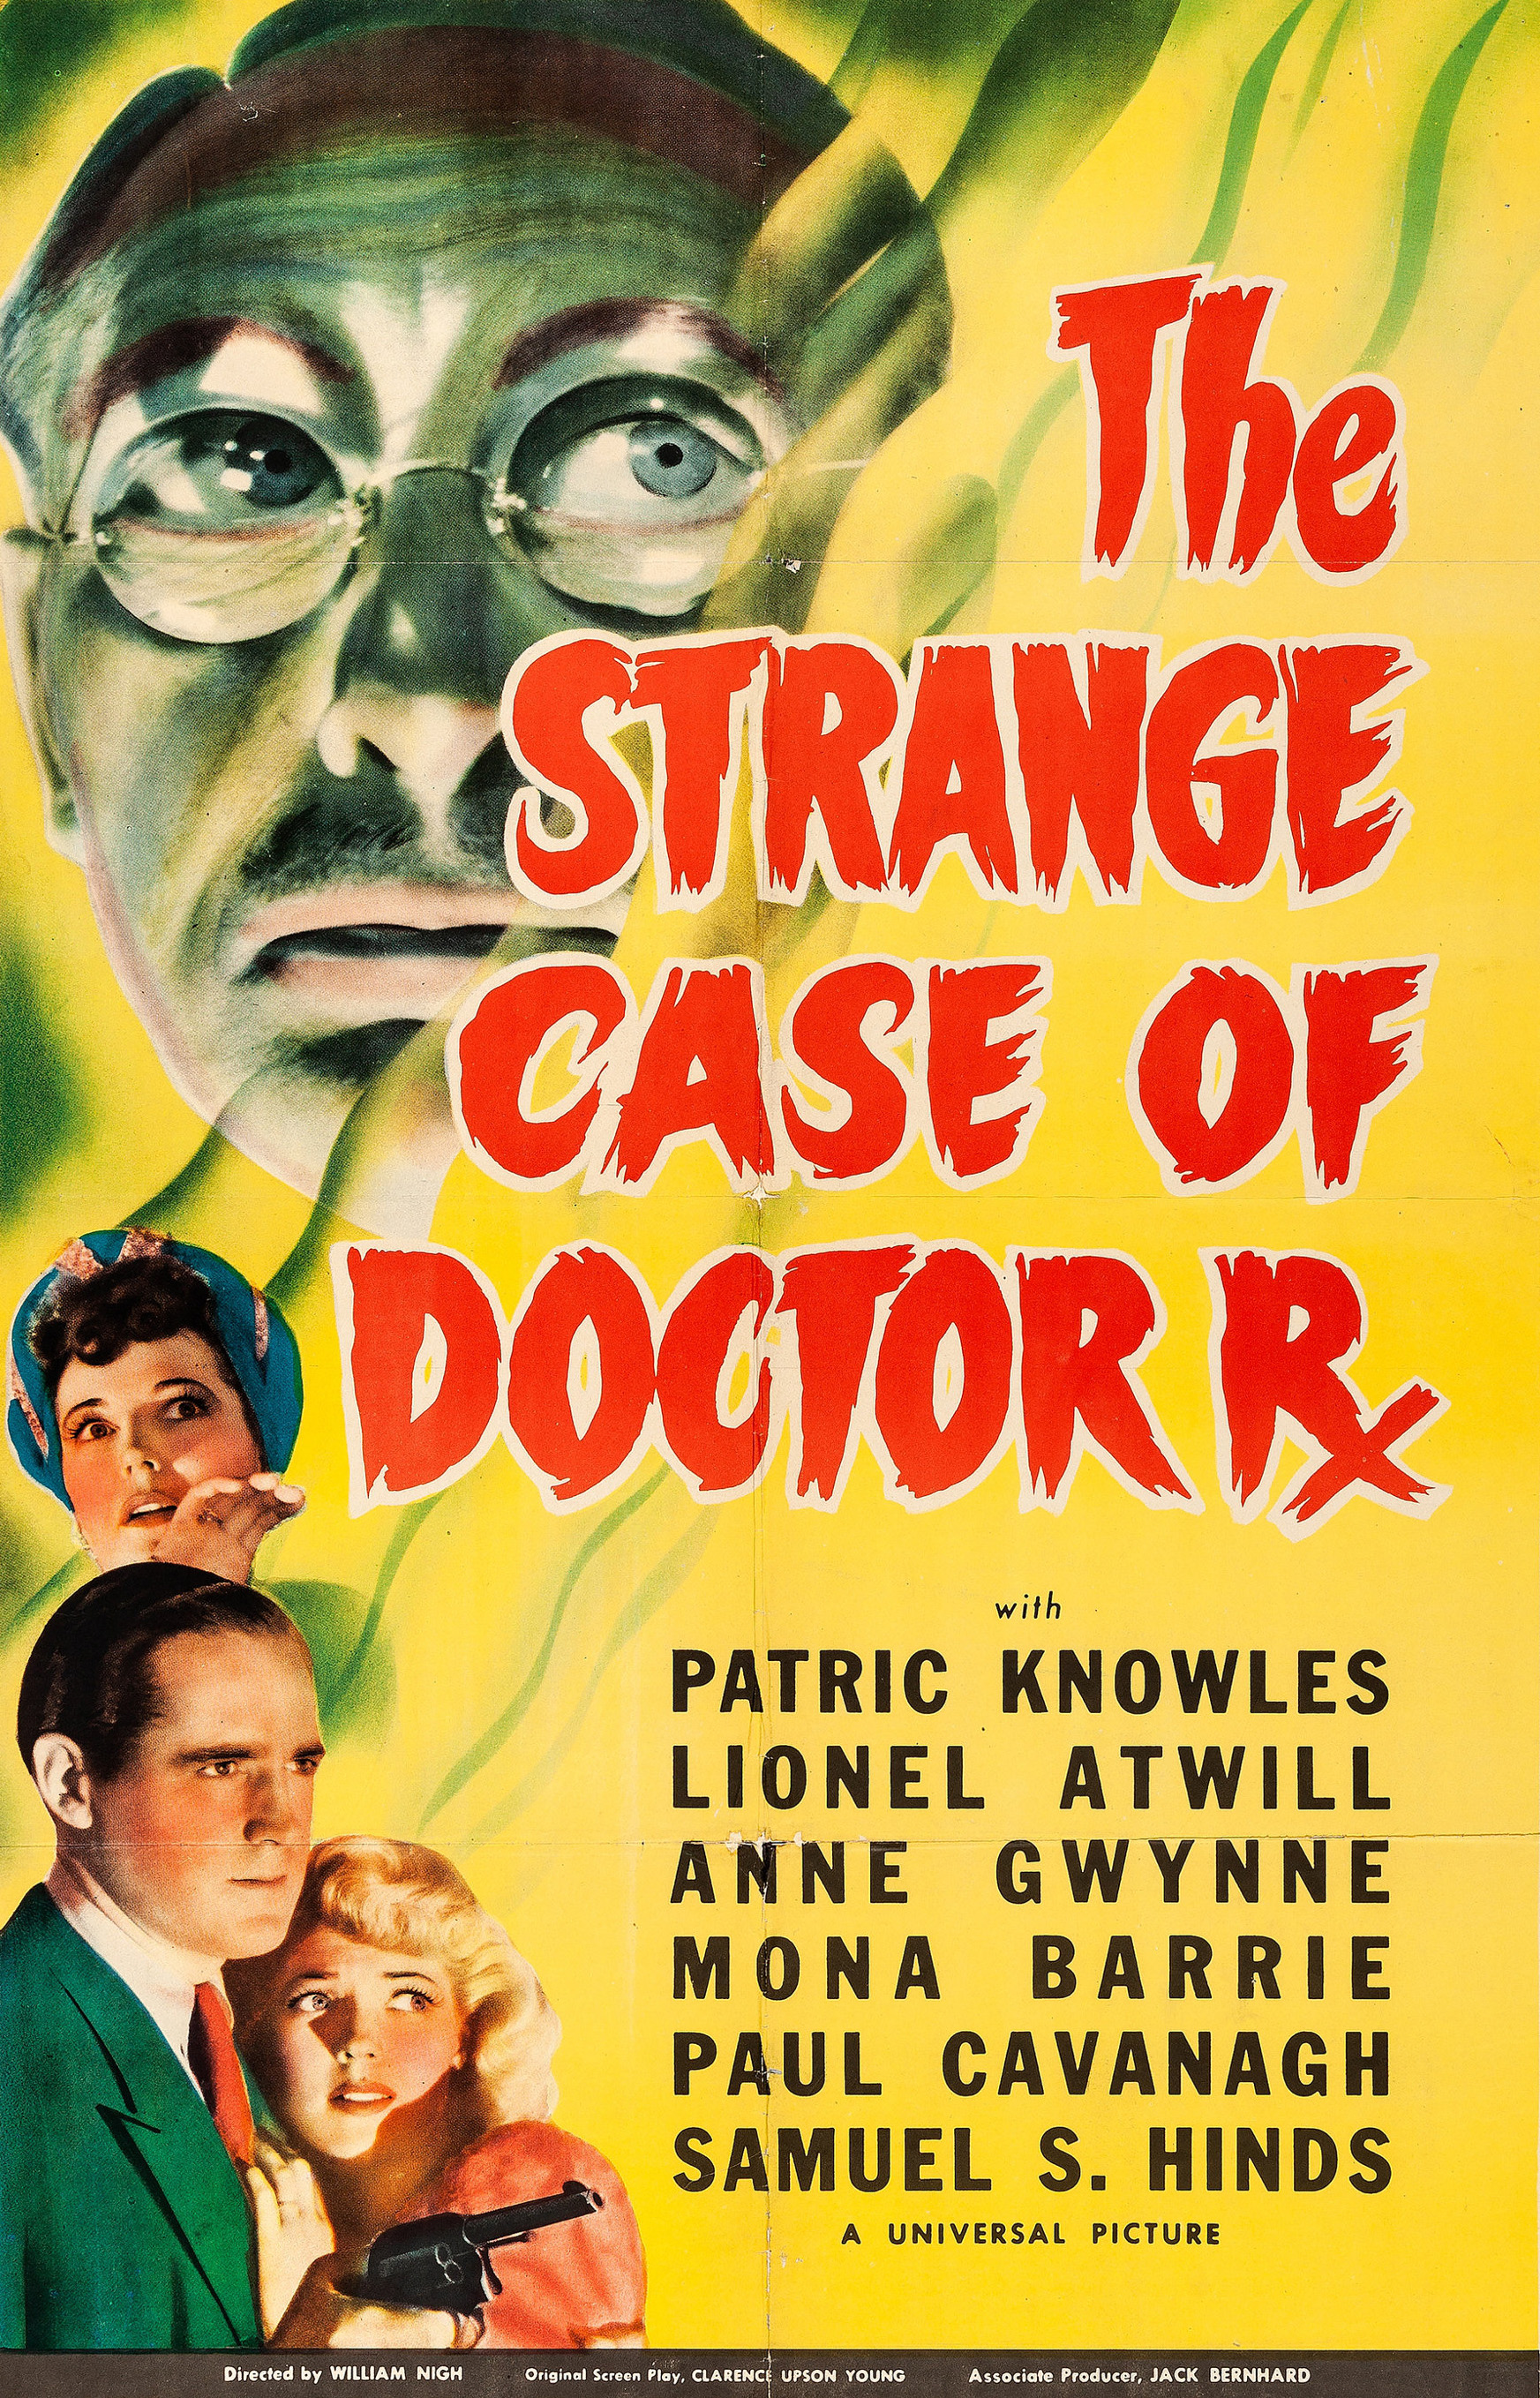 The Strange Case of Doctor Rx hd on soap2day